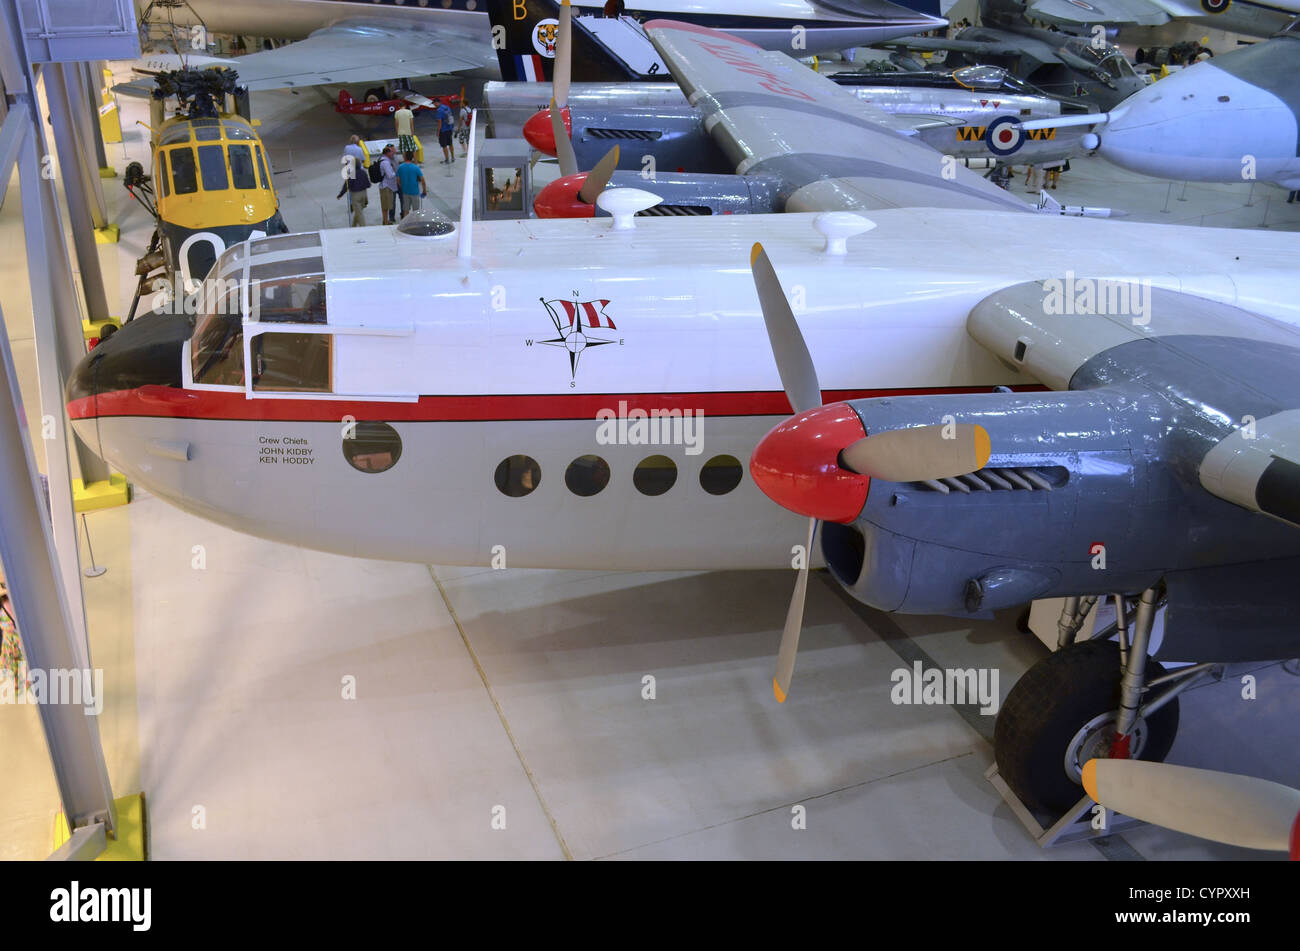 Avro York on display at Duxford Airspace - Stock Image